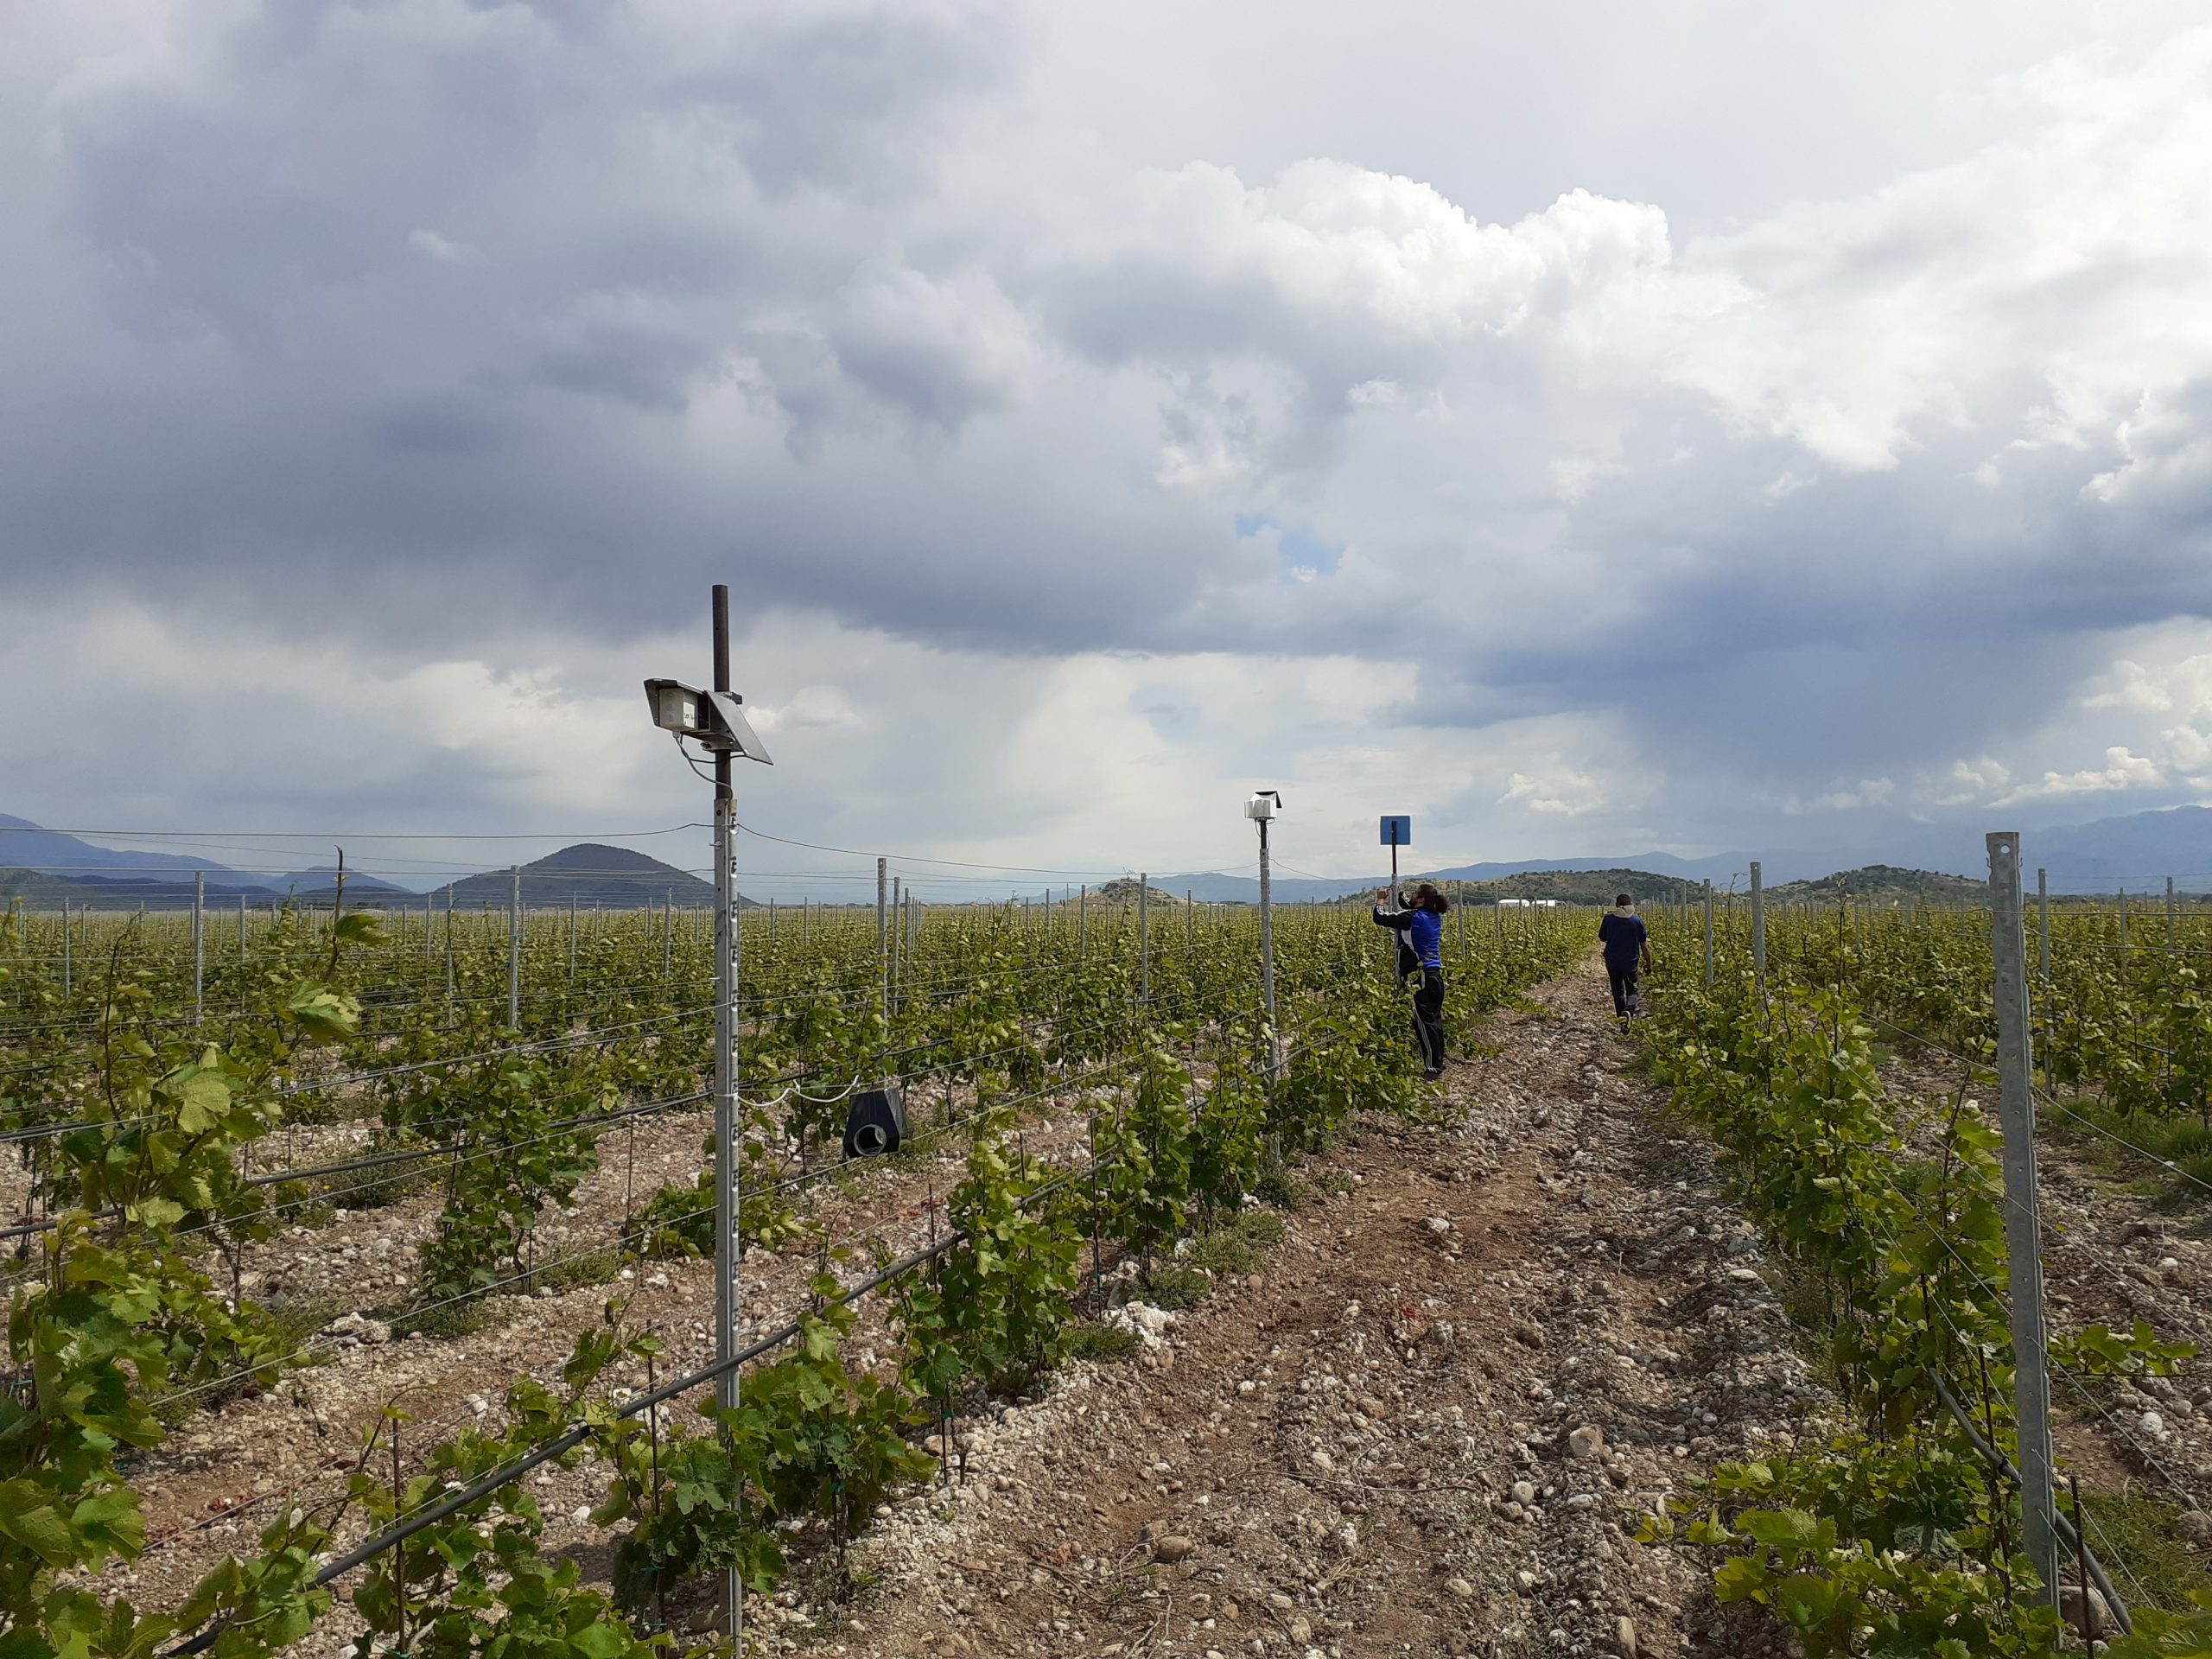 Sensors being deployed in vineyards